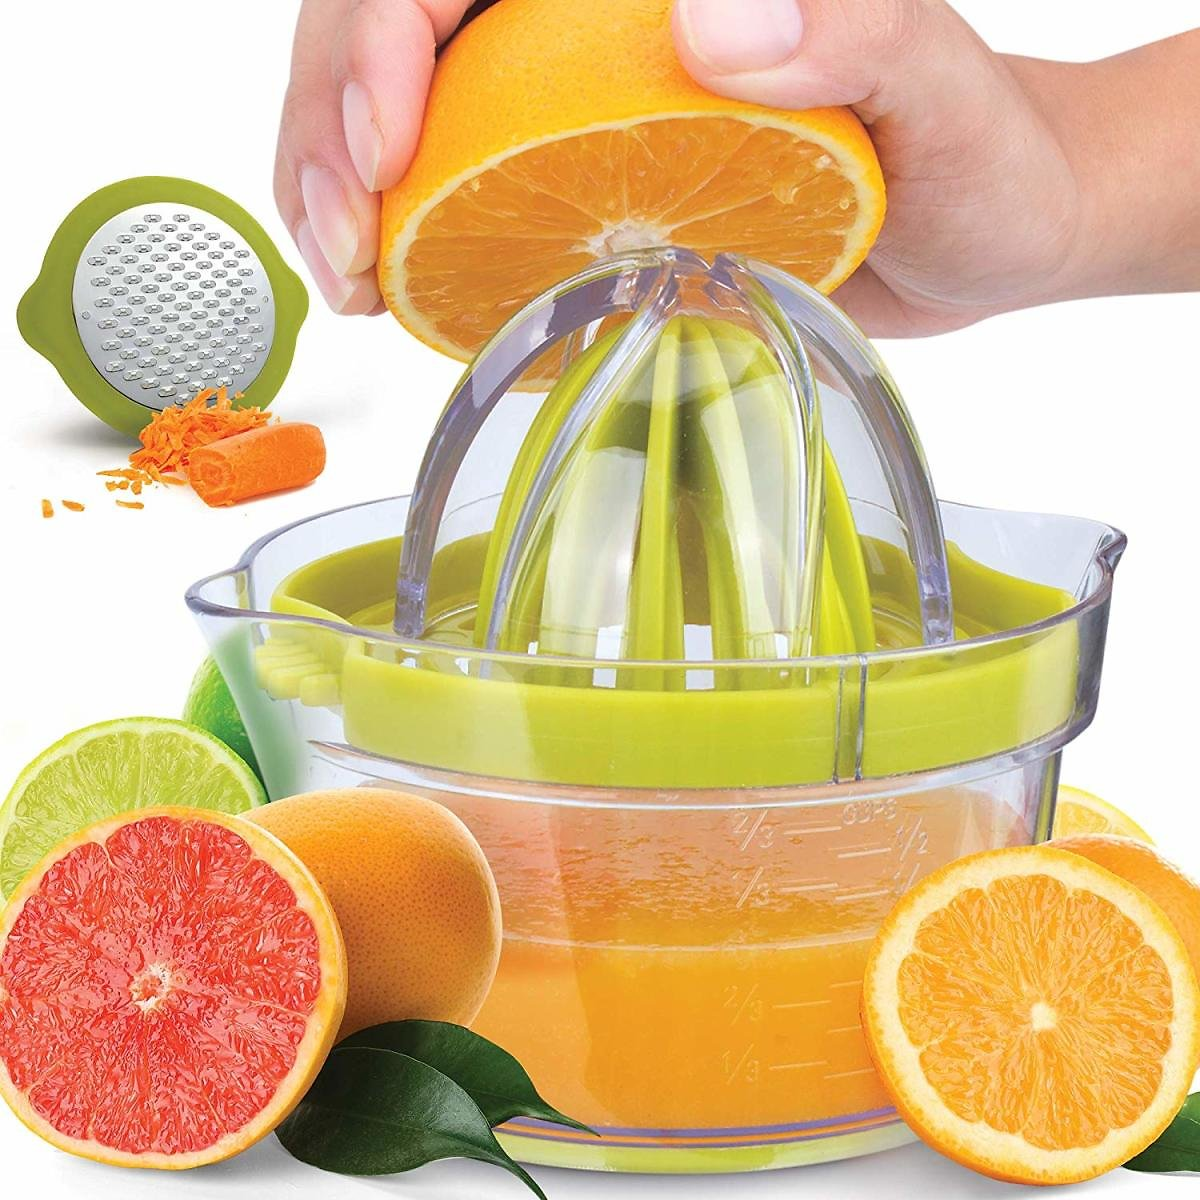 Lemon Orange Citrus Juicer, Manual Hand Juicer with Built-In Strainer and Measuring Cup, 2 Size Reamers, Citrus Juice Extractor